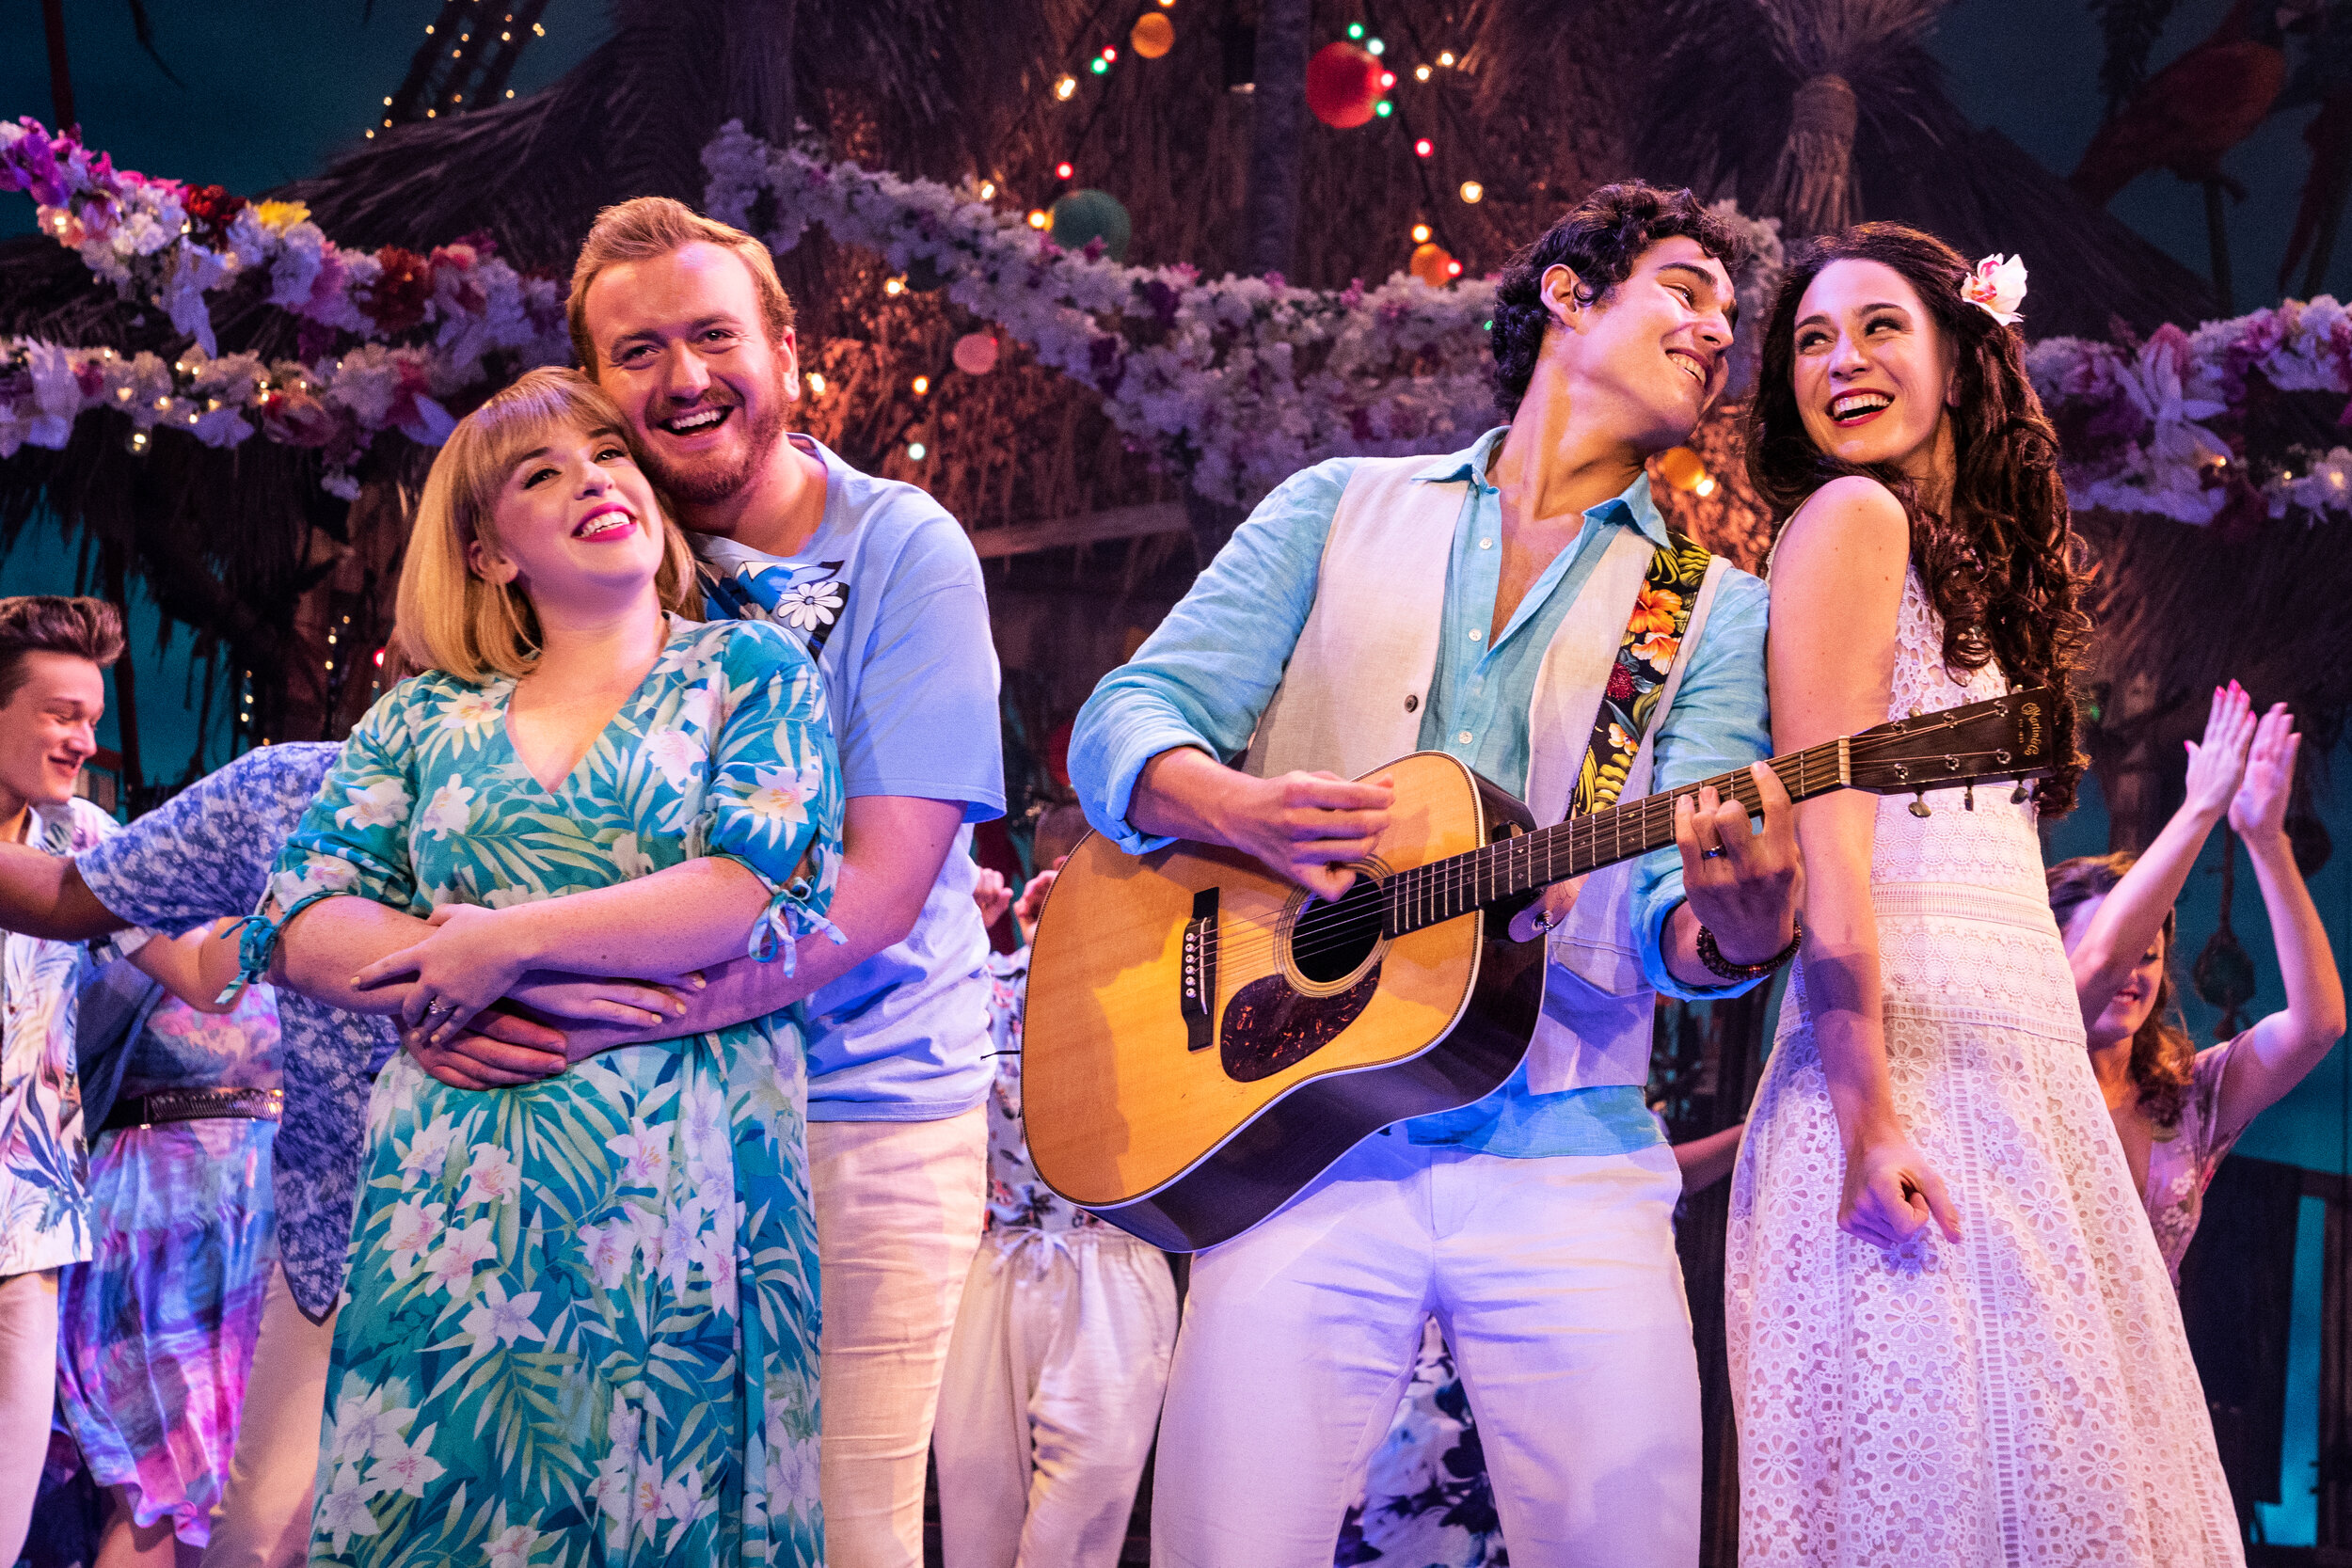 Shelly Lynn Walsh as Tammy, Peter Michael Jordan as Brick, Chris Clark as Tully, Sarah Hinrichsen as Rachelin Jimmy Buffett's ESCAPE TO MARGARITAVILLE. © Matthew Murphy